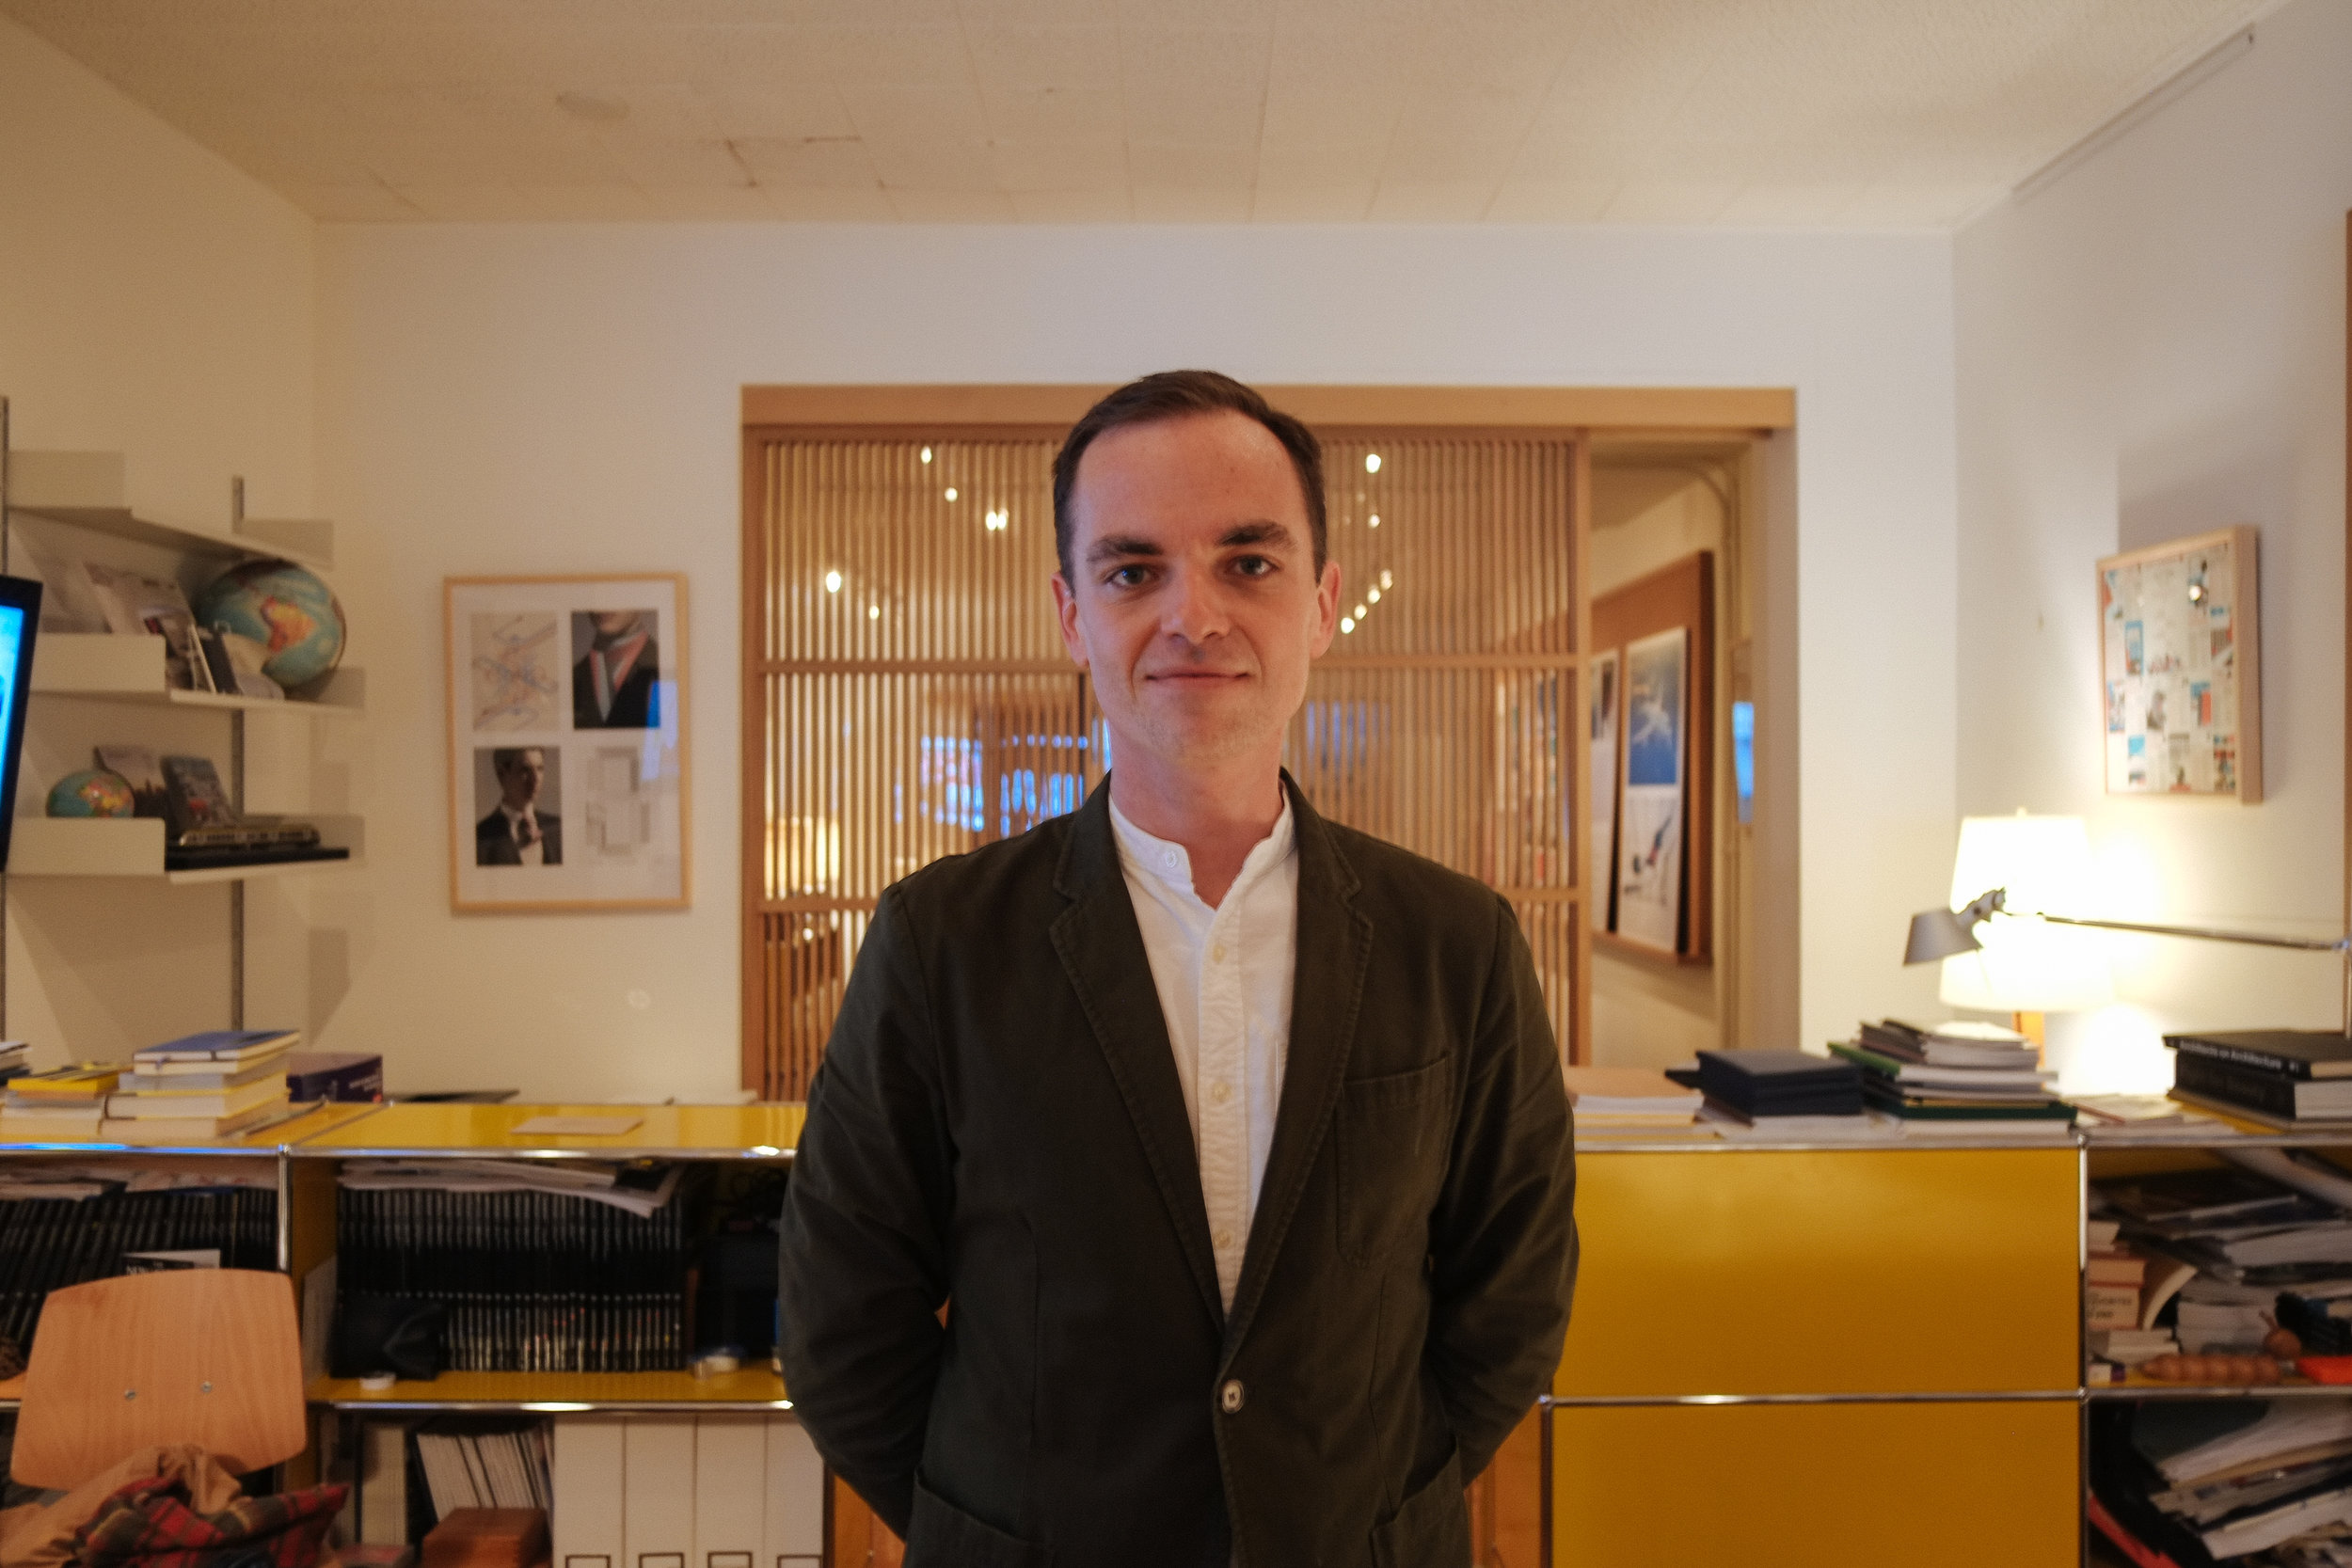 Monocle Bureau: Toronto - 2018-02-20: Stopped by the Monocle Toronto Bureau headquarters to visit my good friend and Bureau Chief, Tomas Lewis. I forced Tomas to take a photo and I promised I'd make him look good - even though I didn't modify this photo, I think I held up my end of the promise. I left with the strong desire to spend too much money on Monocle x Comme Des Garçons Scent 1: Hinoki.